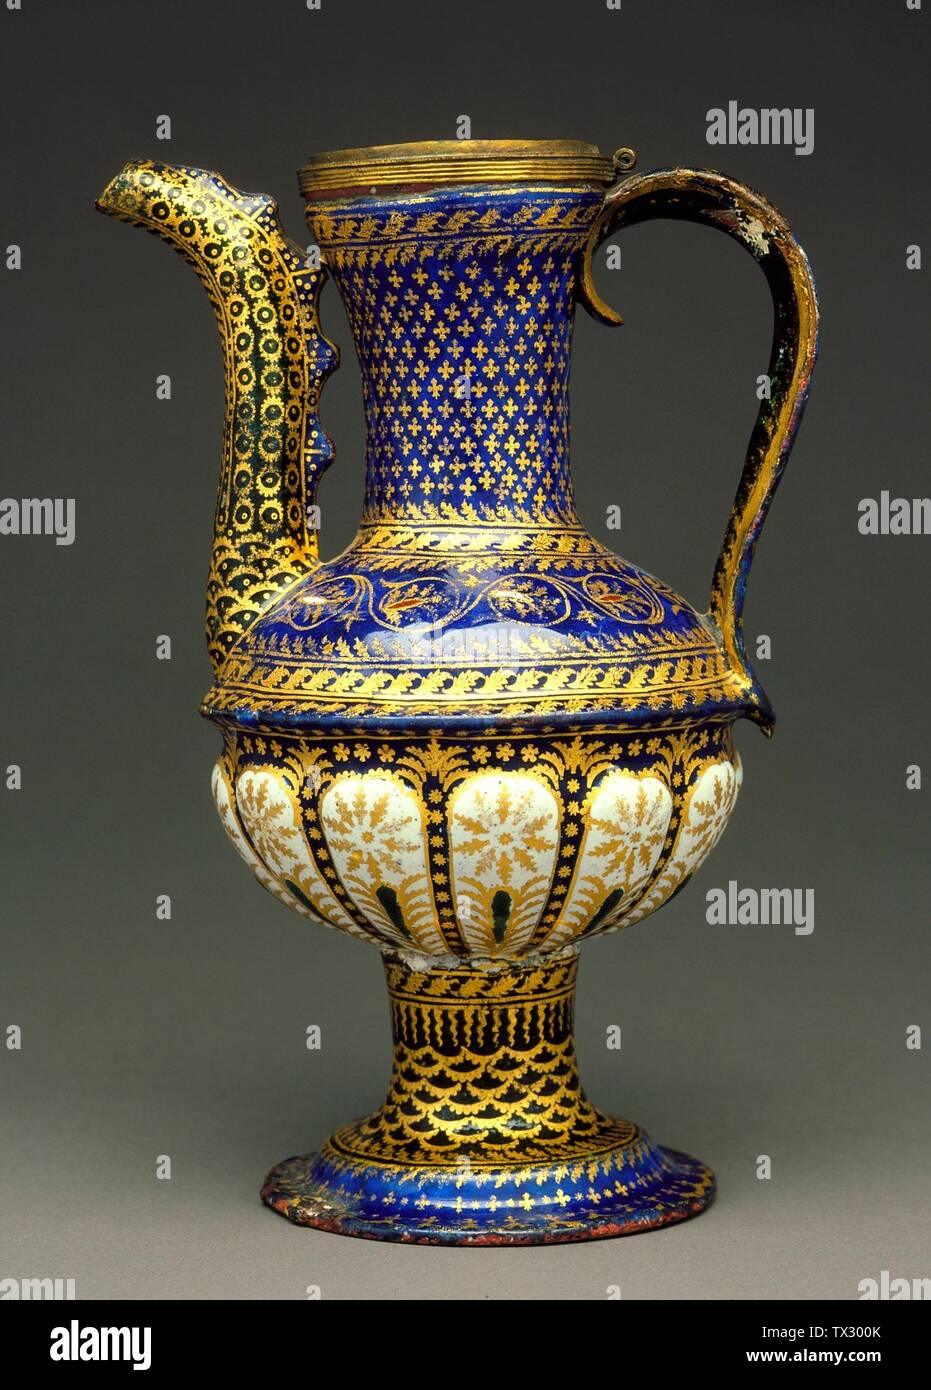 'Ewer; English:  Italy, Venice, circa 1500 Furnishings; Serviceware Polychrome enamel, gold on copper Height:  8 1/2 in. (21.5 cm) Gift of Varya and Hans Cohn (AC1992.152.115) Decorative Arts and Design; circa 1500 date QS:P571,+1500-00-00T00:00:00Z/9,P1480,Q5727902; ' - Stock Image